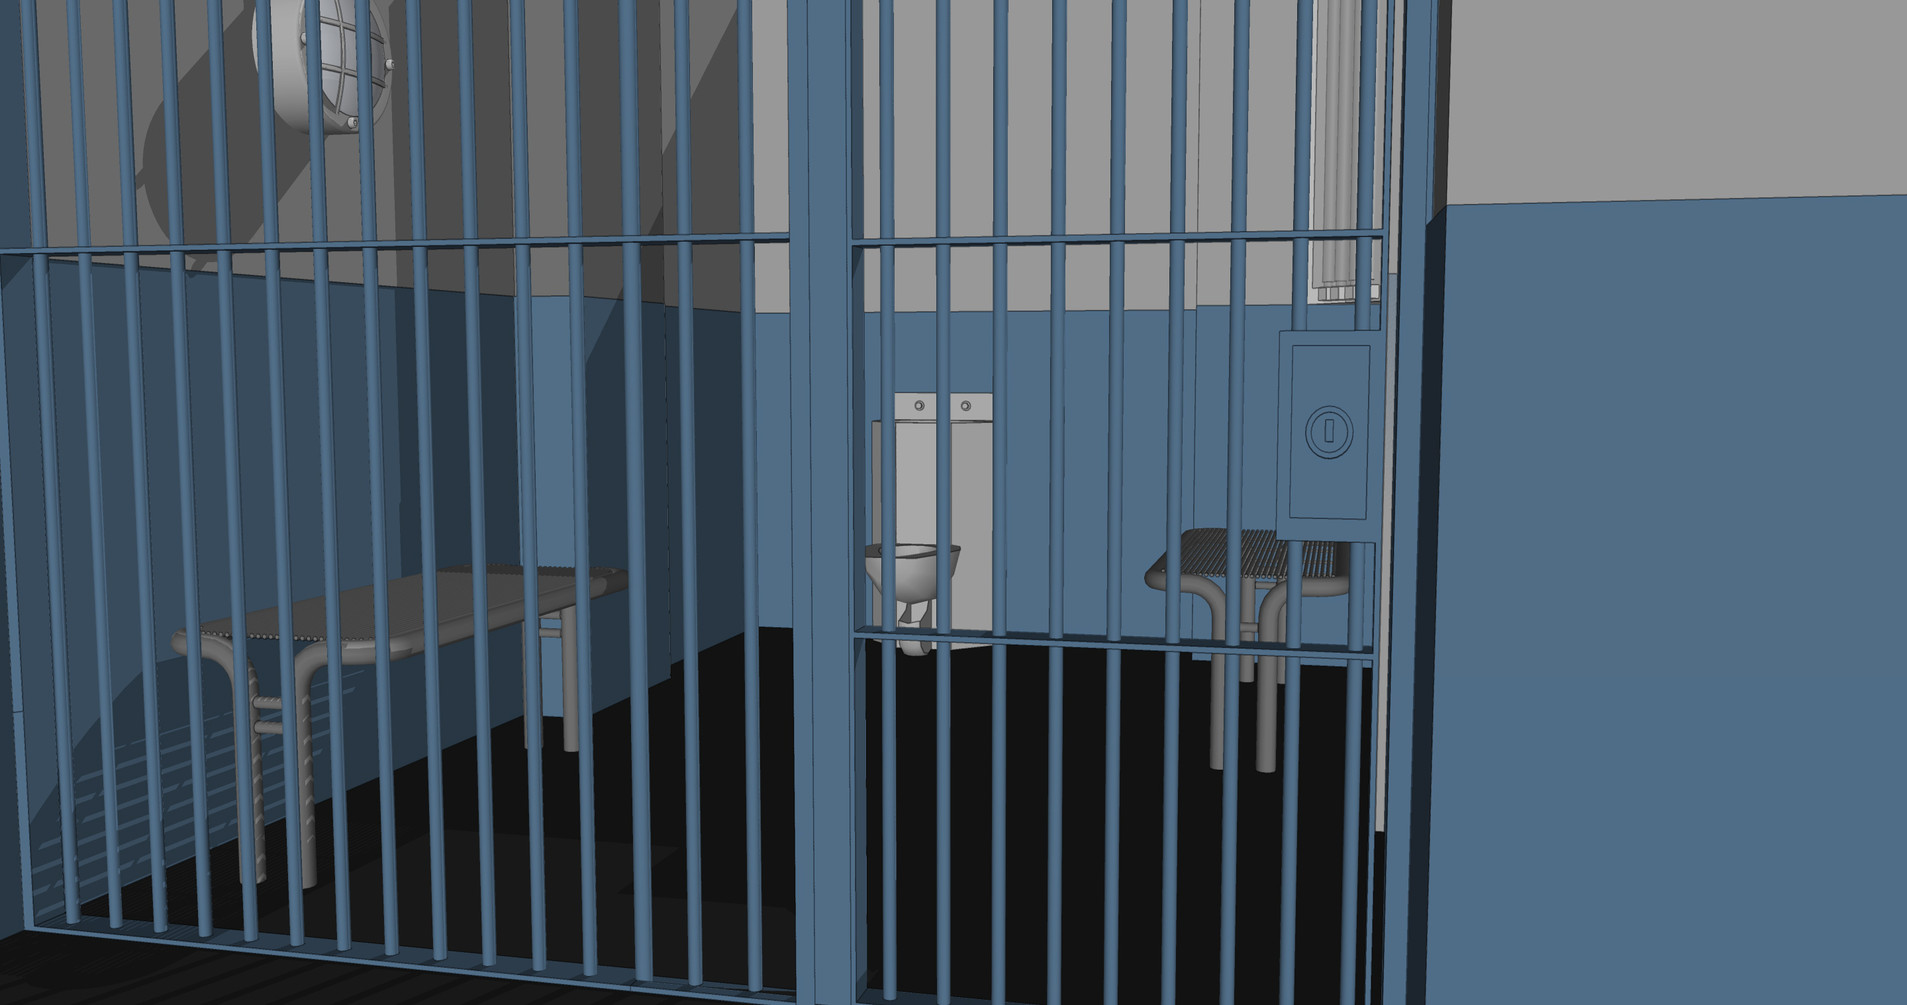 Jail Cell Sketch